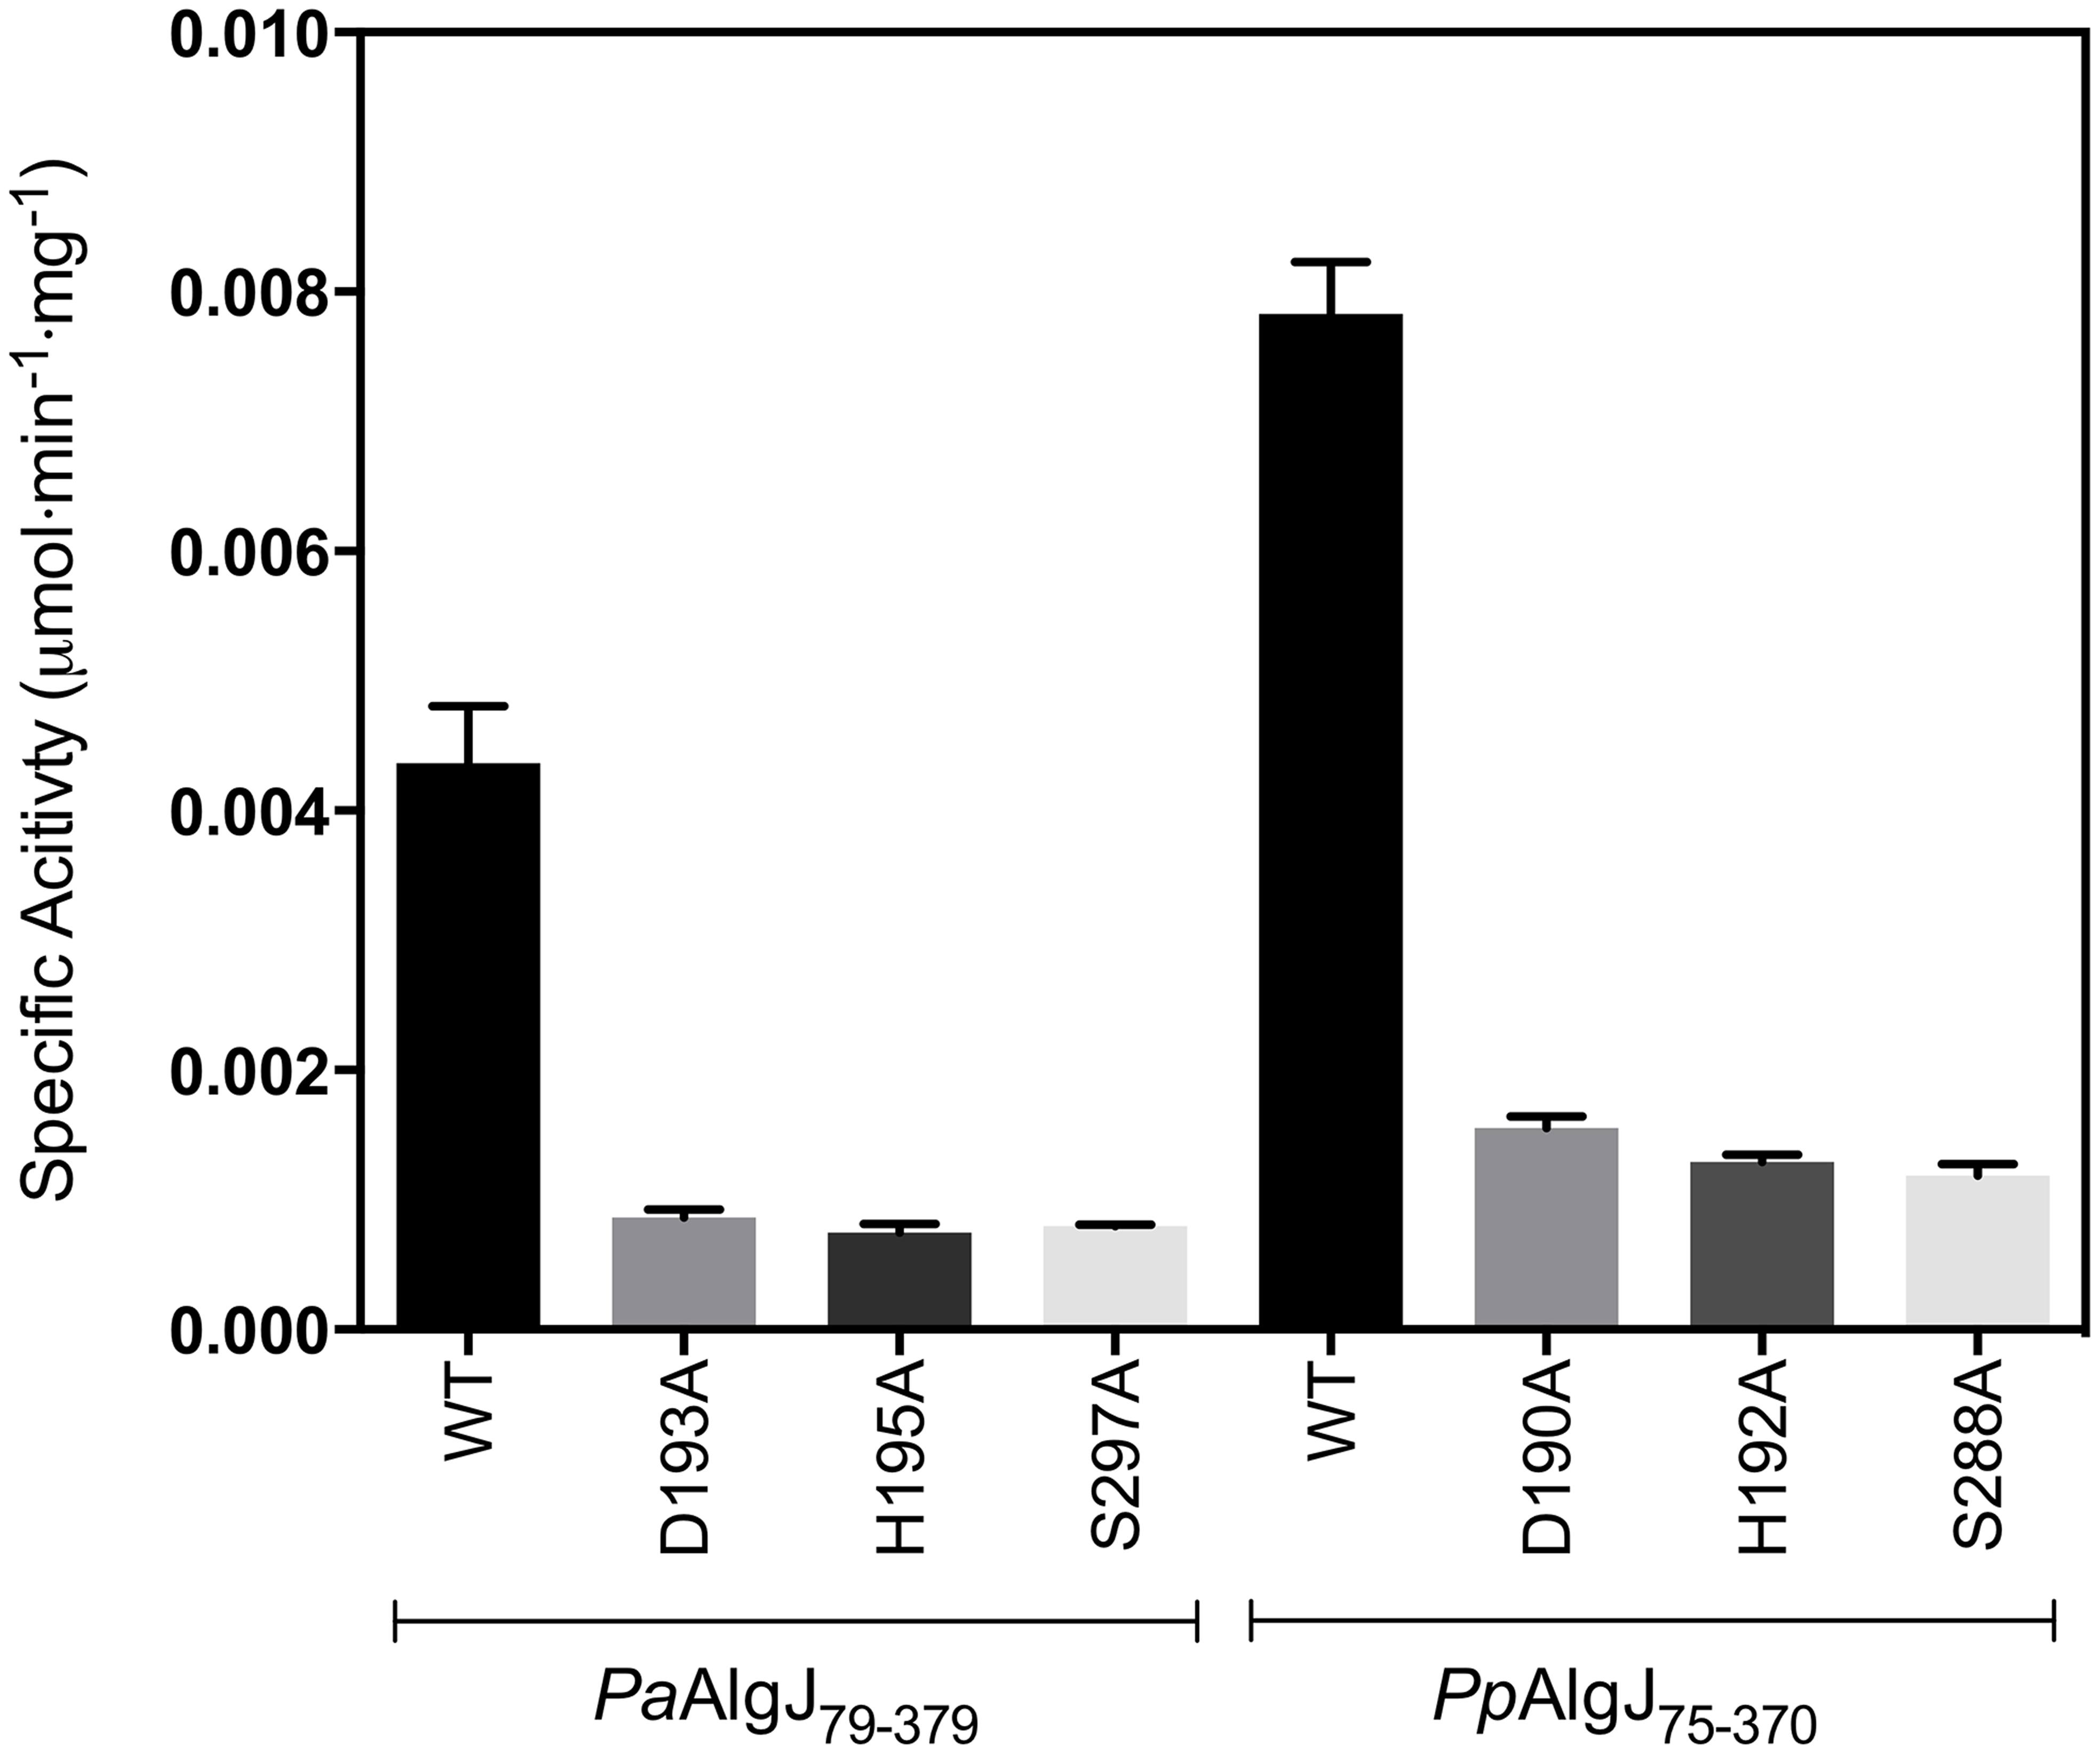 Specific activities of wild-type and catalytic triad mutants of <i>Pp</i>AlgJ<sub>75–370</sub> and <i>Pa</i>AlgJ<sub>79–379</sub>.